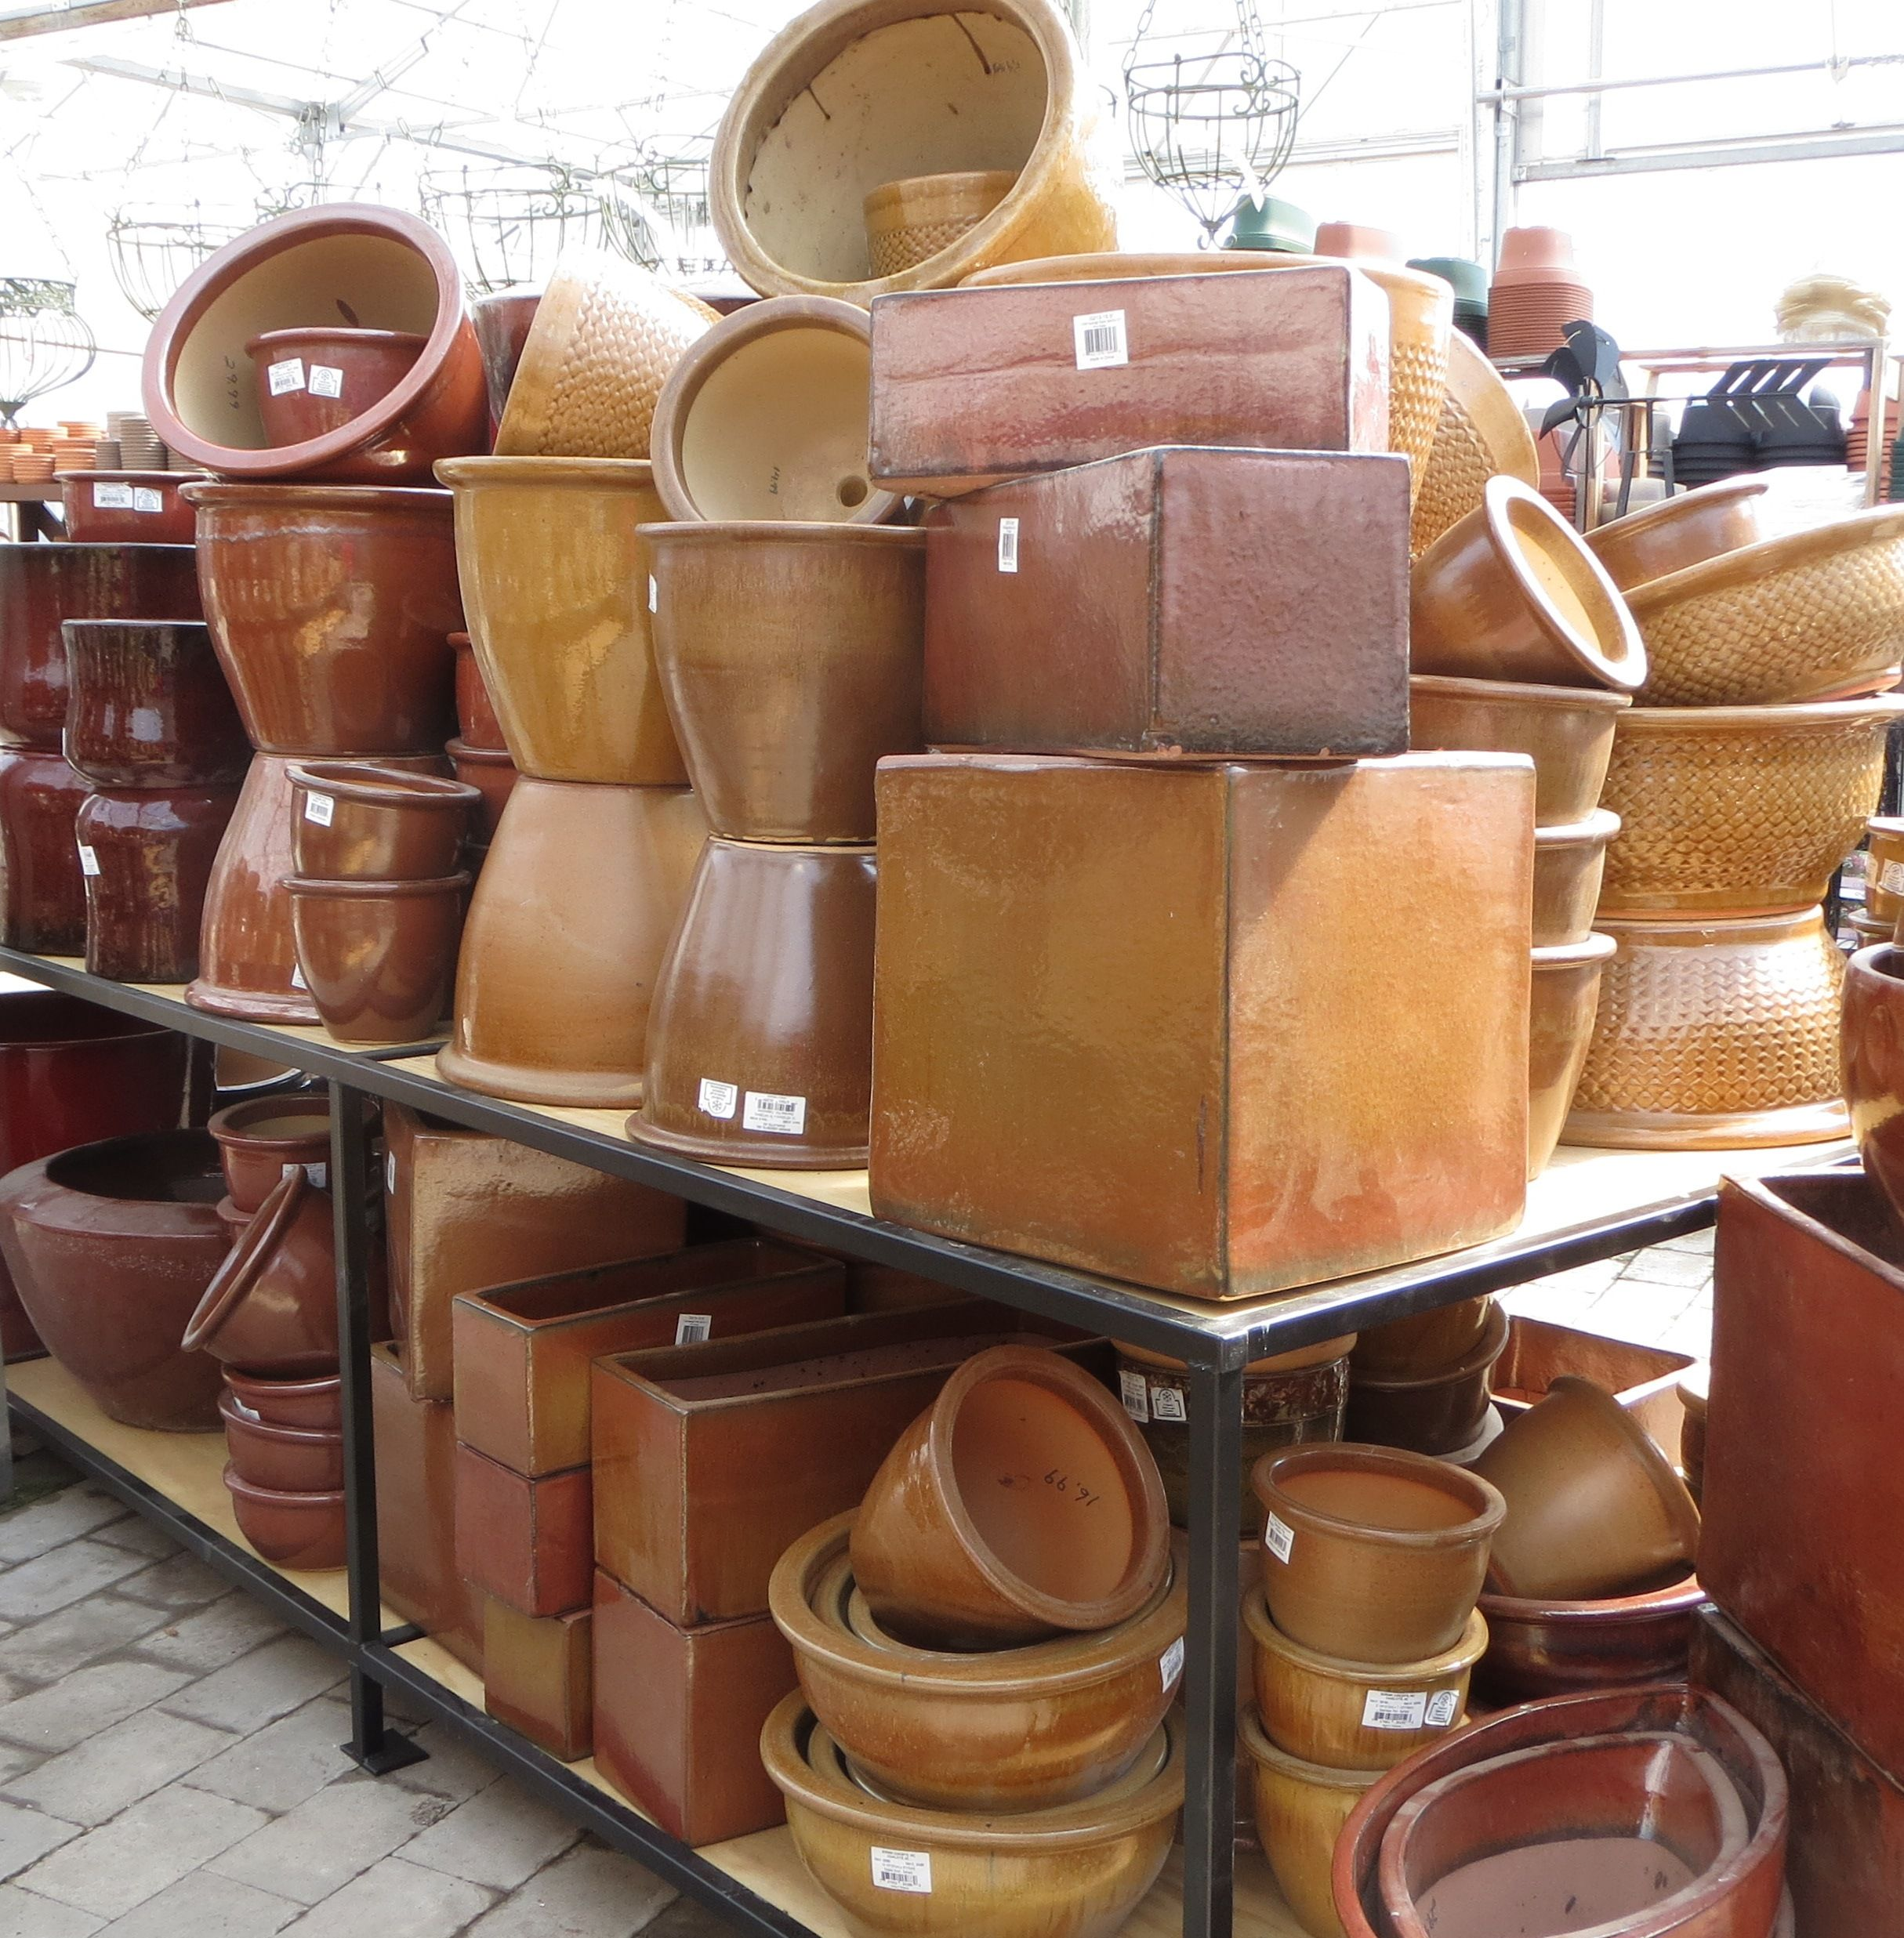 Ppttery, Pottery, And More Pottery! Bristolu0027s Garden Center (Victor, NY)